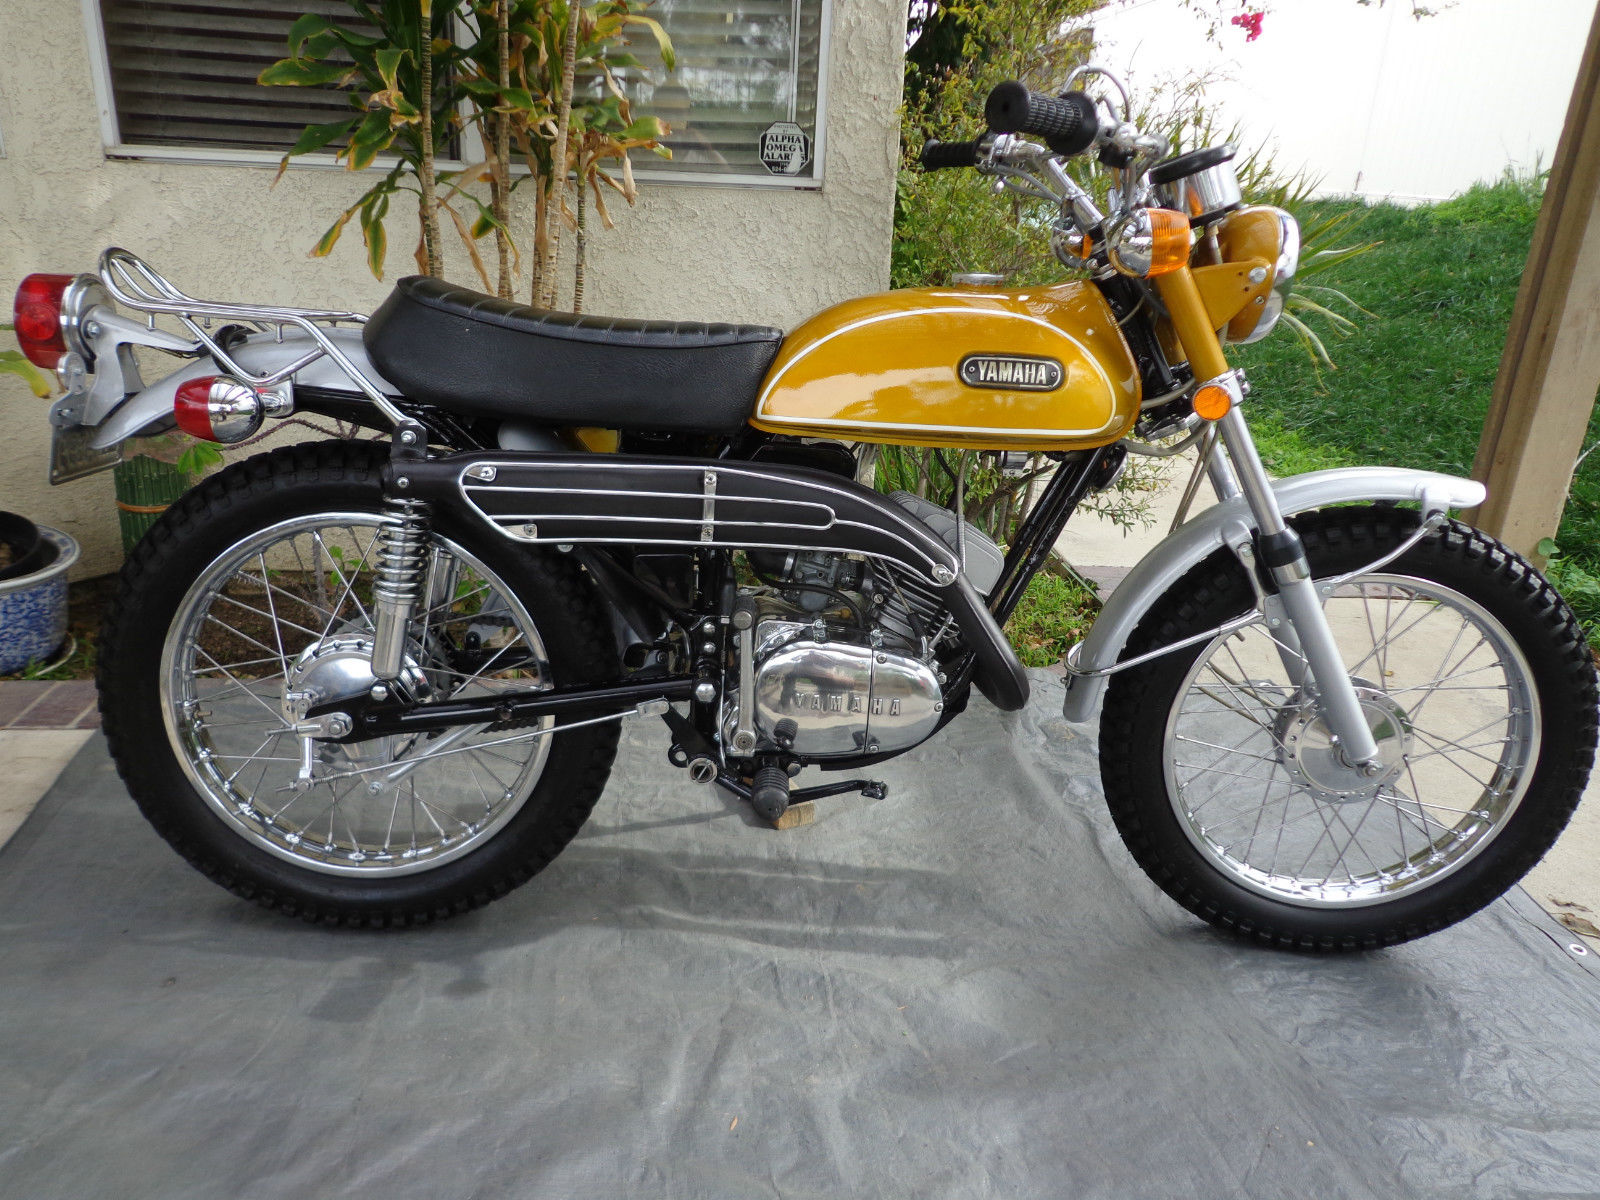 Yamaha Dt 100 Wiring Specifications Free Diagram For You 1975 125 Enduro 1970 400 History 1974